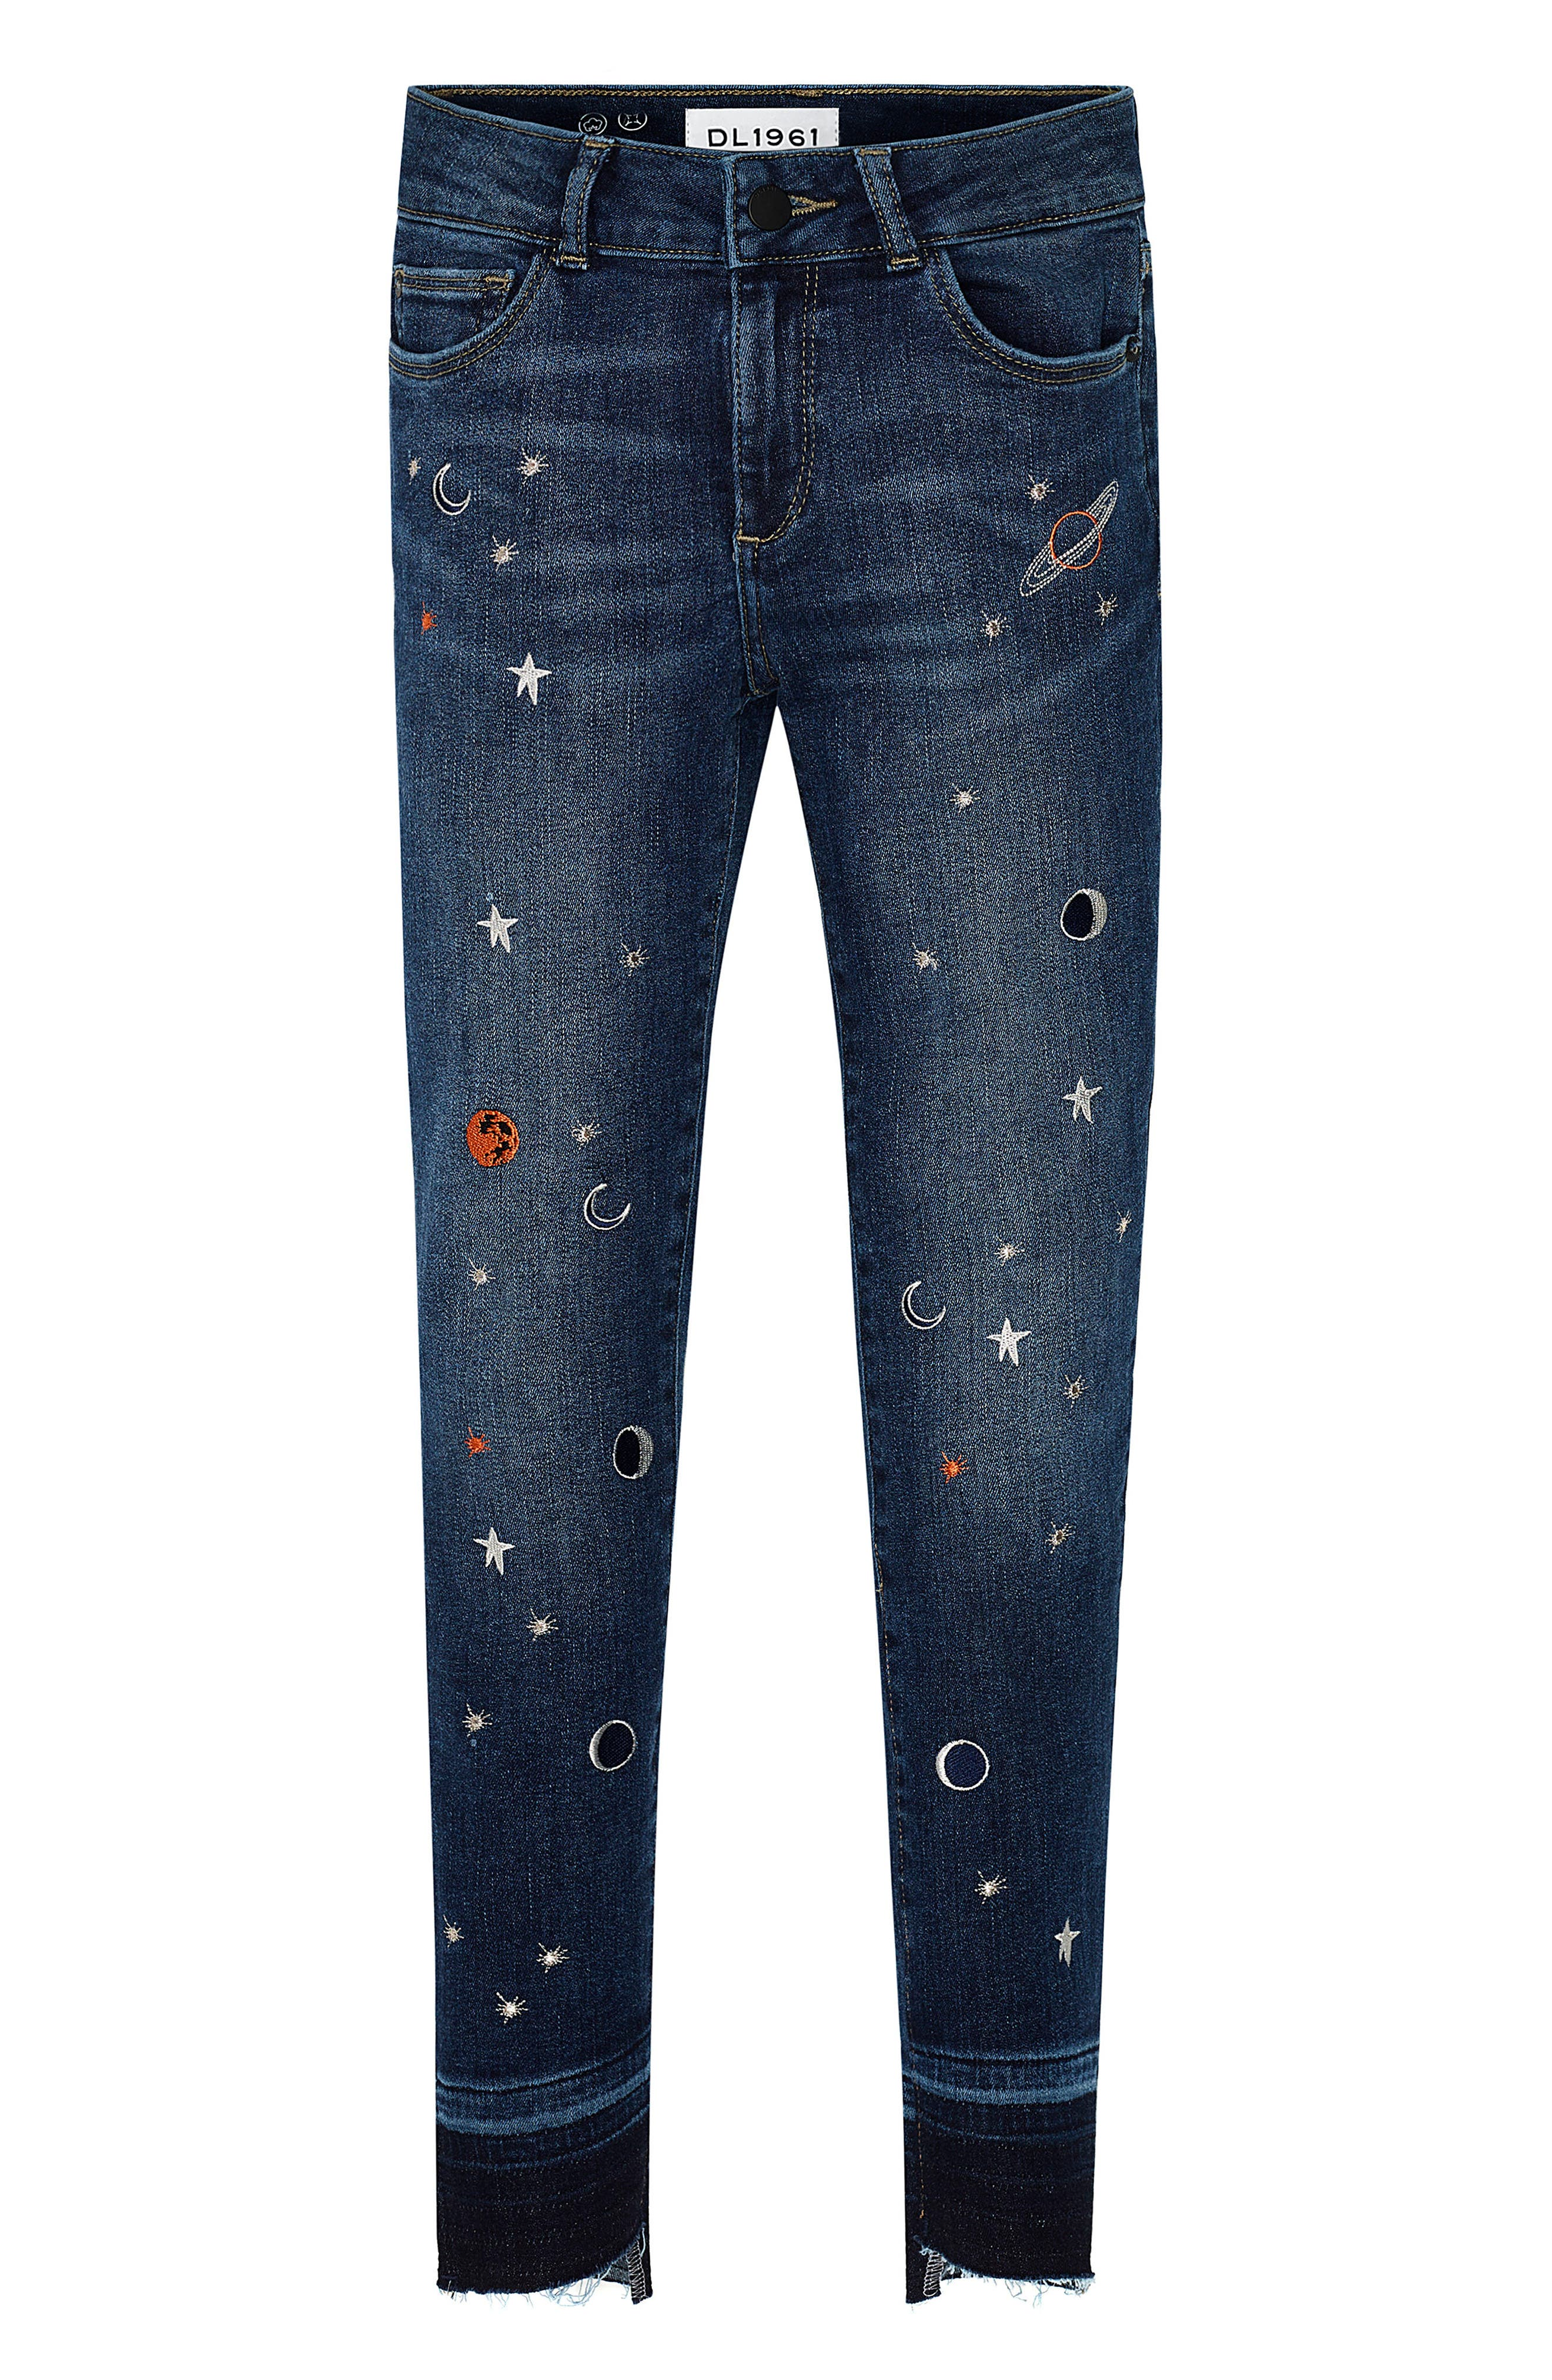 Main Image - DL1961 Chloe Galaxy Embroidered Skinny Jeans (Toddler Girls & Little Girls)